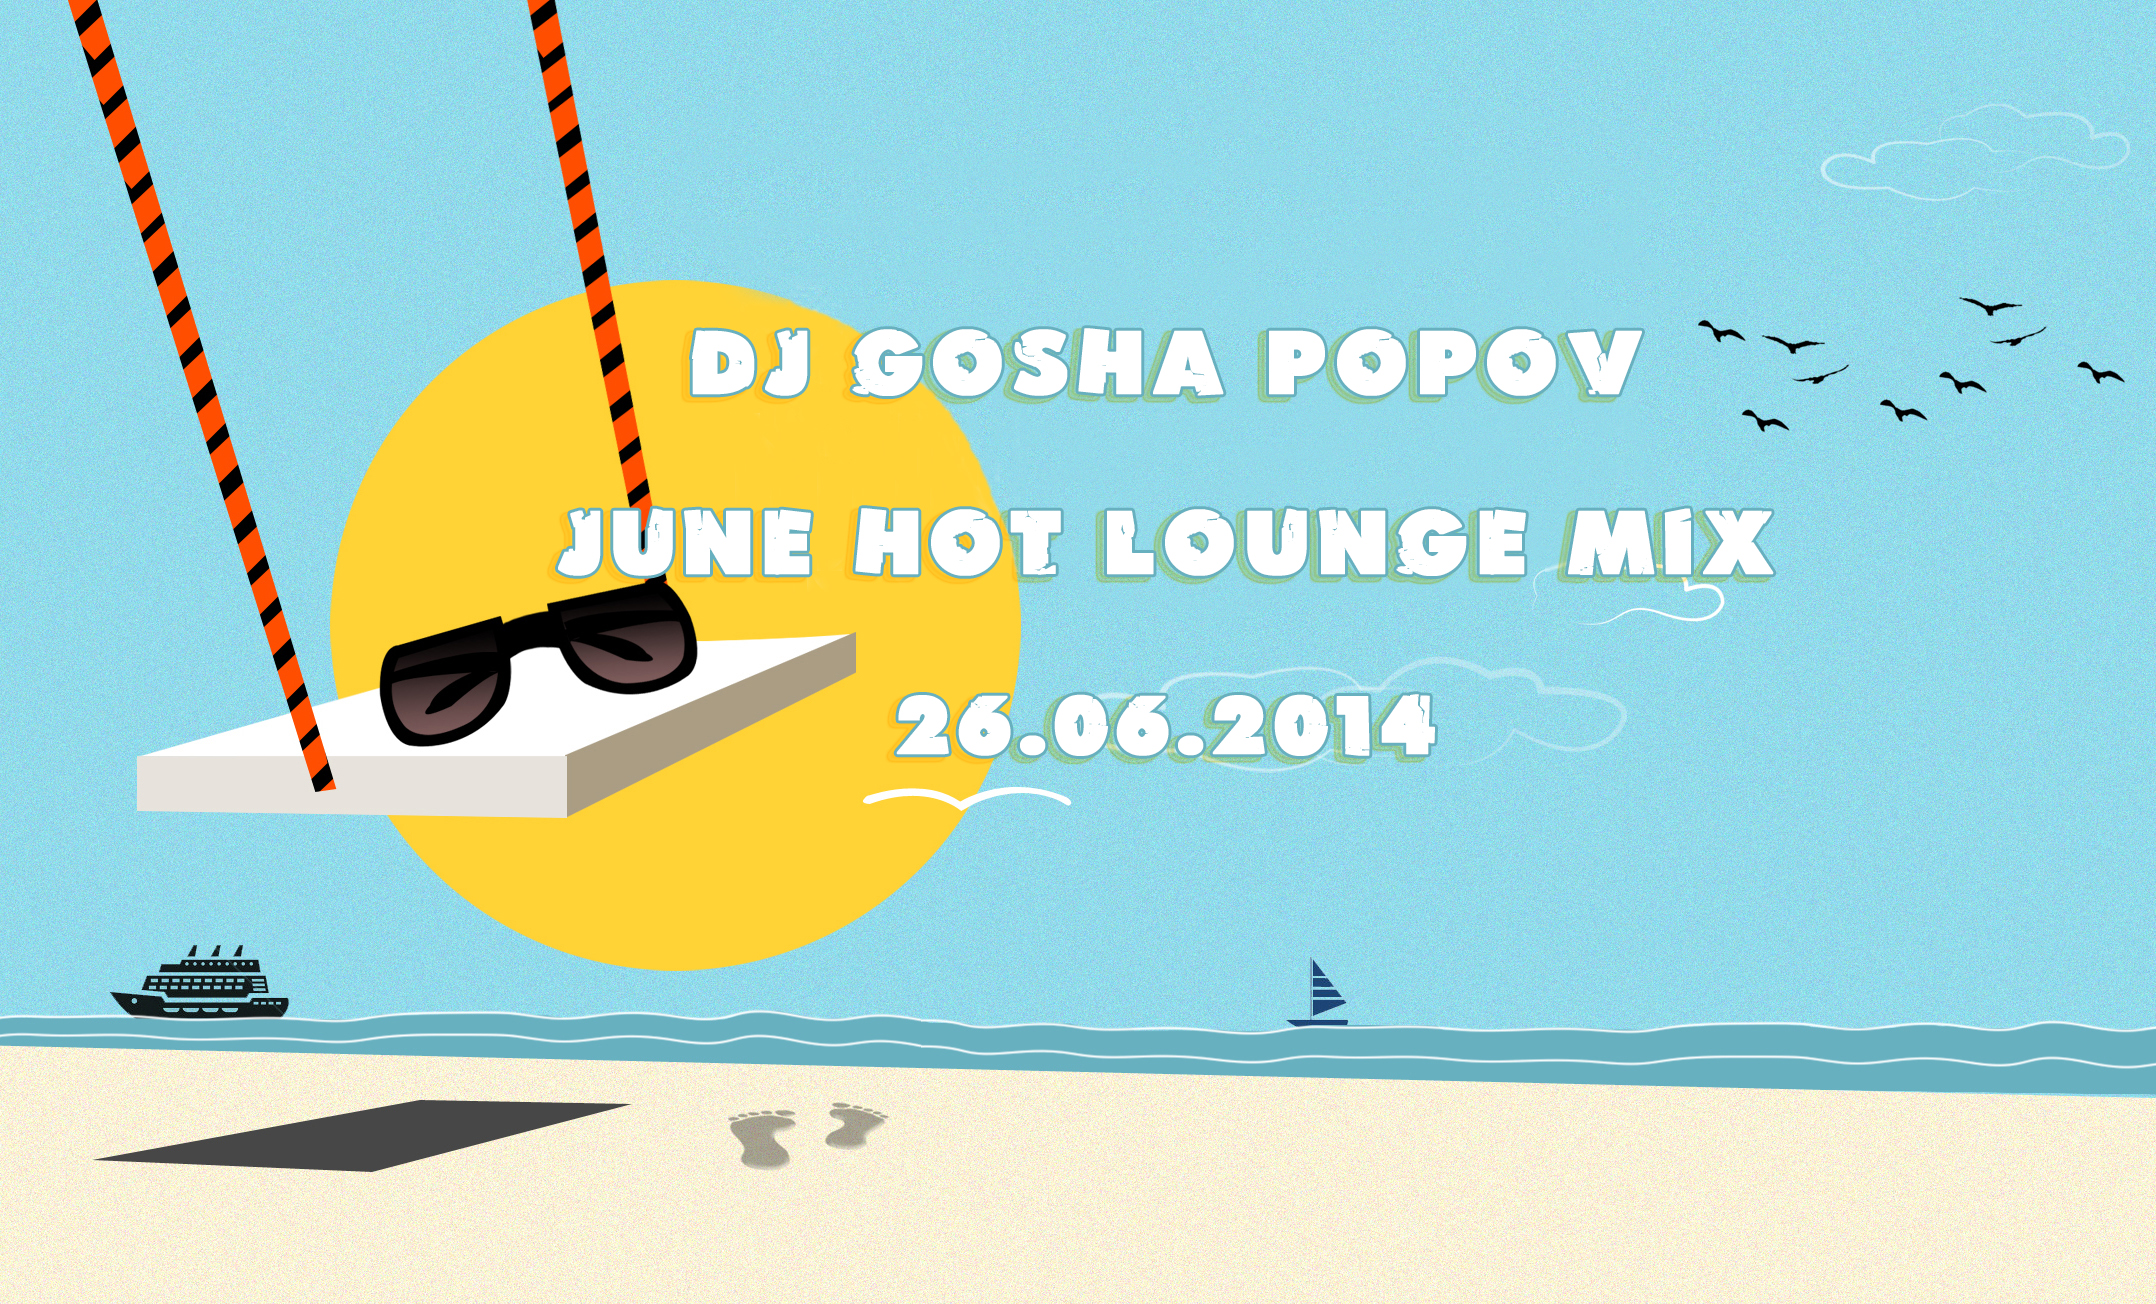 26.06.2014 dj GP - June hot lounge mix